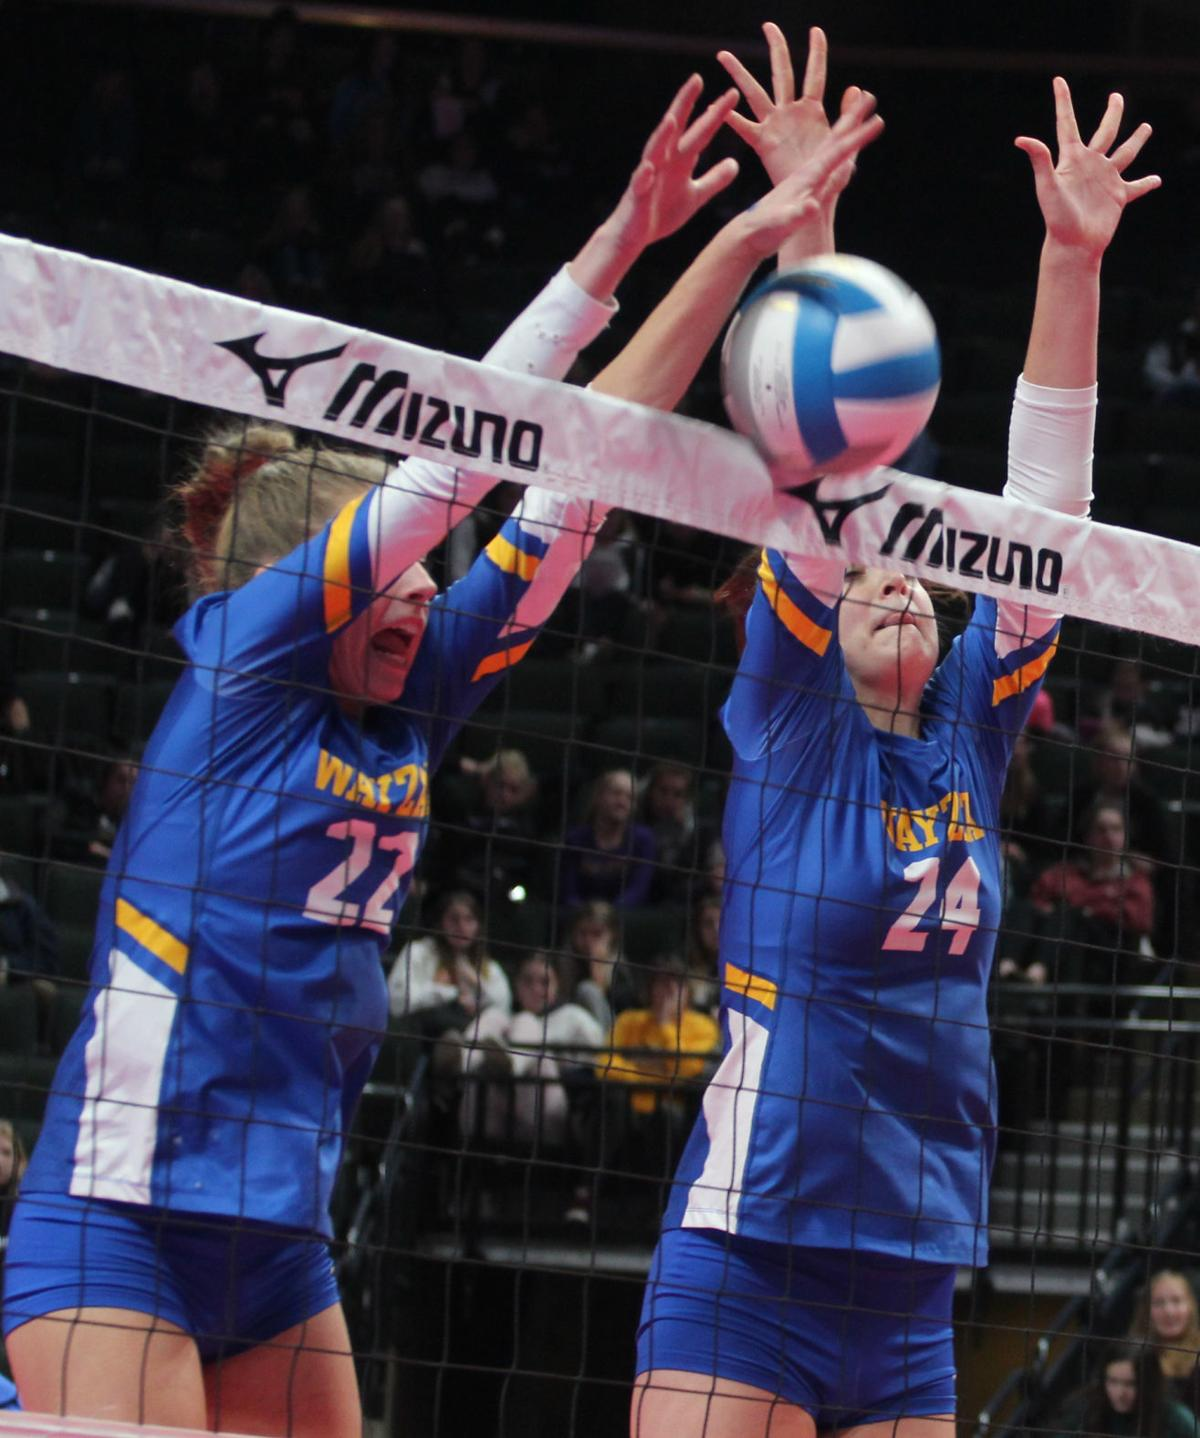 Wayzata Volleyball - Block